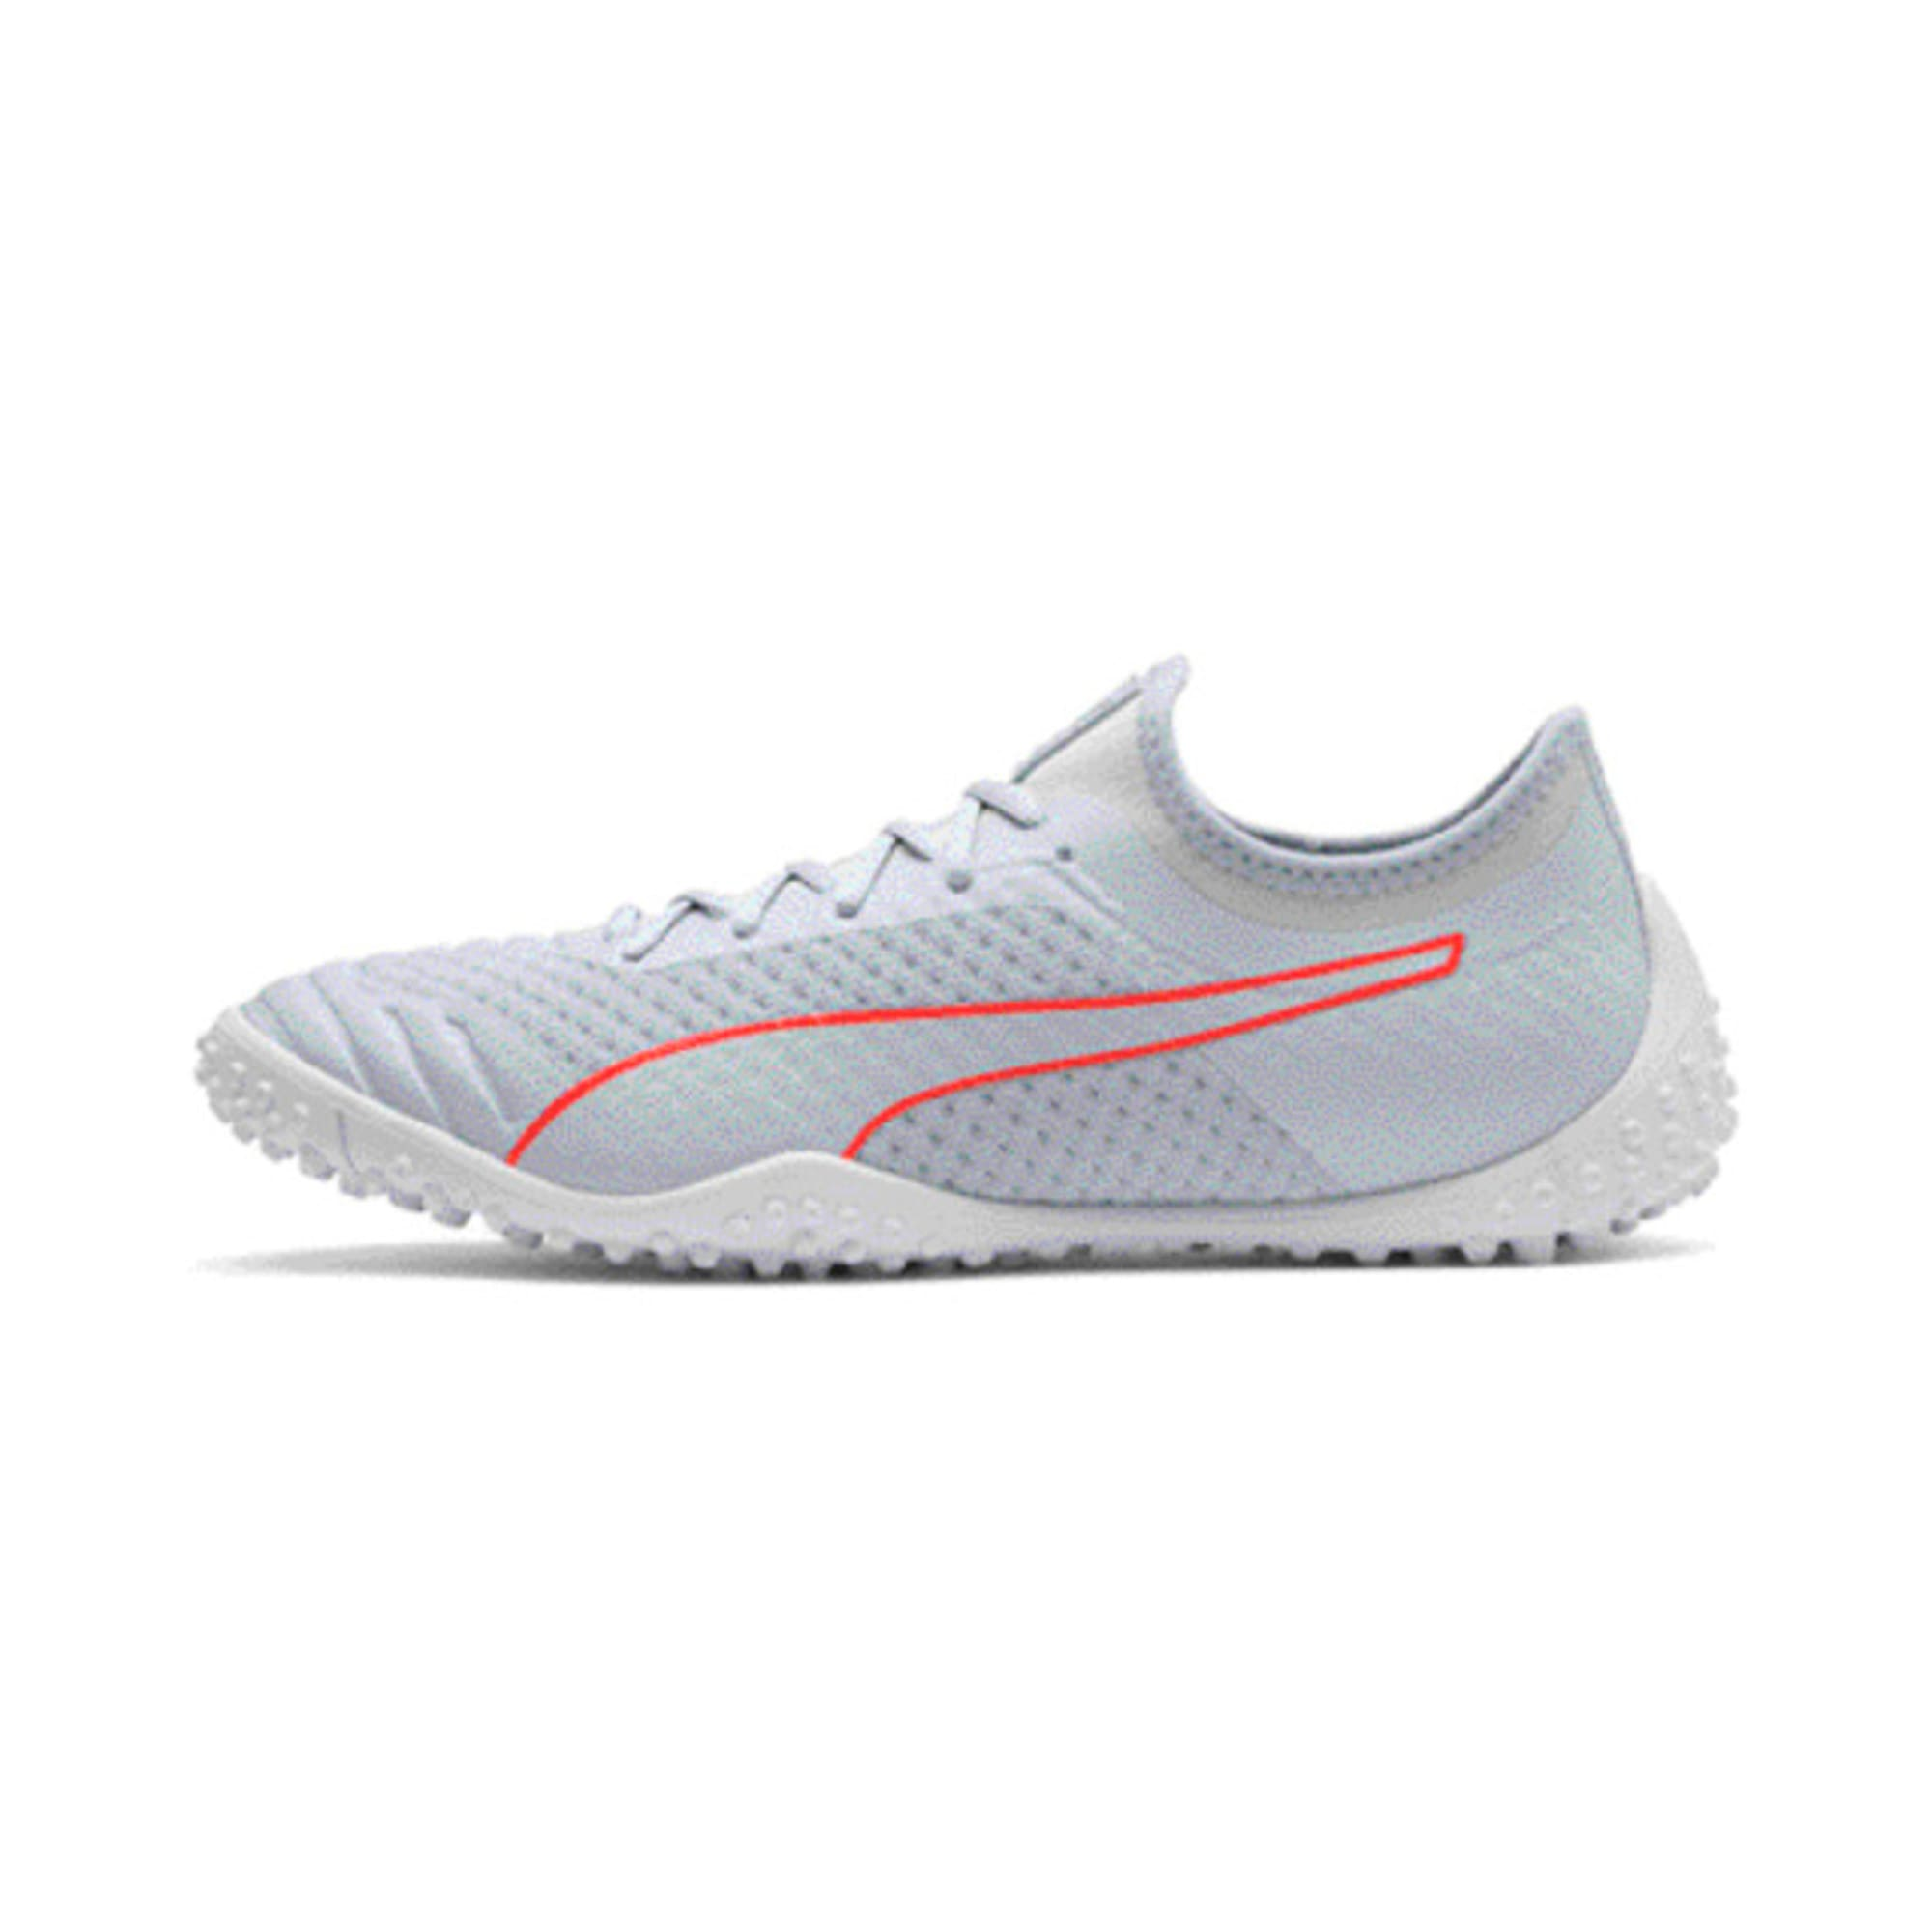 Thumbnail 1 of 365 Concrete 2 Men's Football Boots, Grey Dawn-Nrgy Red-White, medium-IND